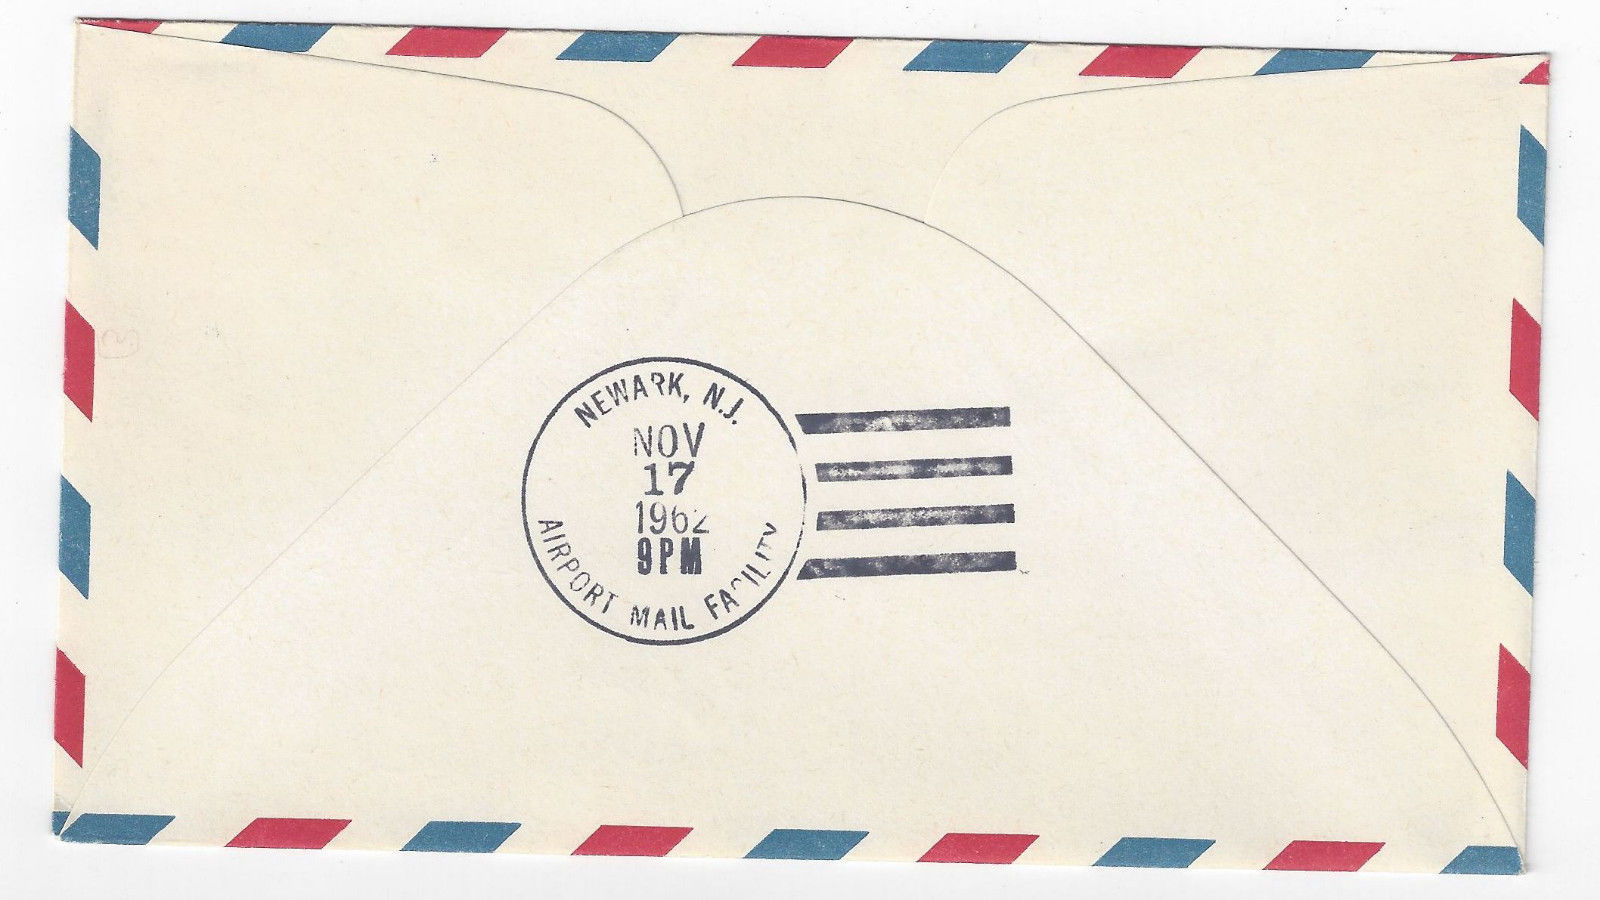 Dulles International Airport Dedication Cover 1962 AMF UC34